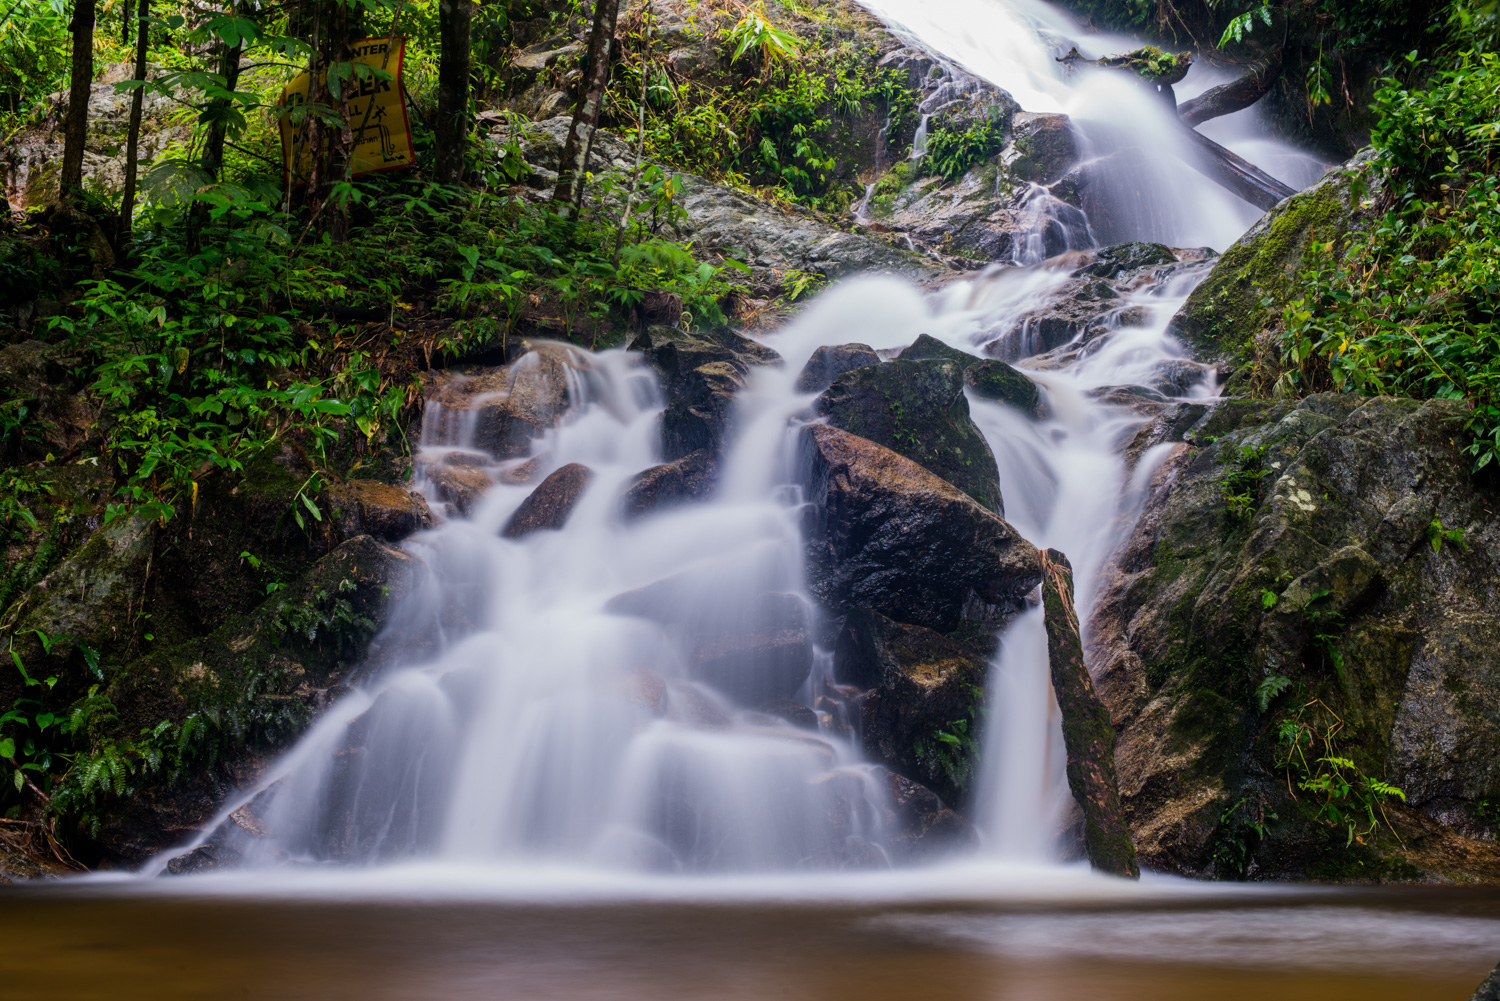 Twently Second Waterfall Using a Slow Shutter Speed to a Create Sense of Motion